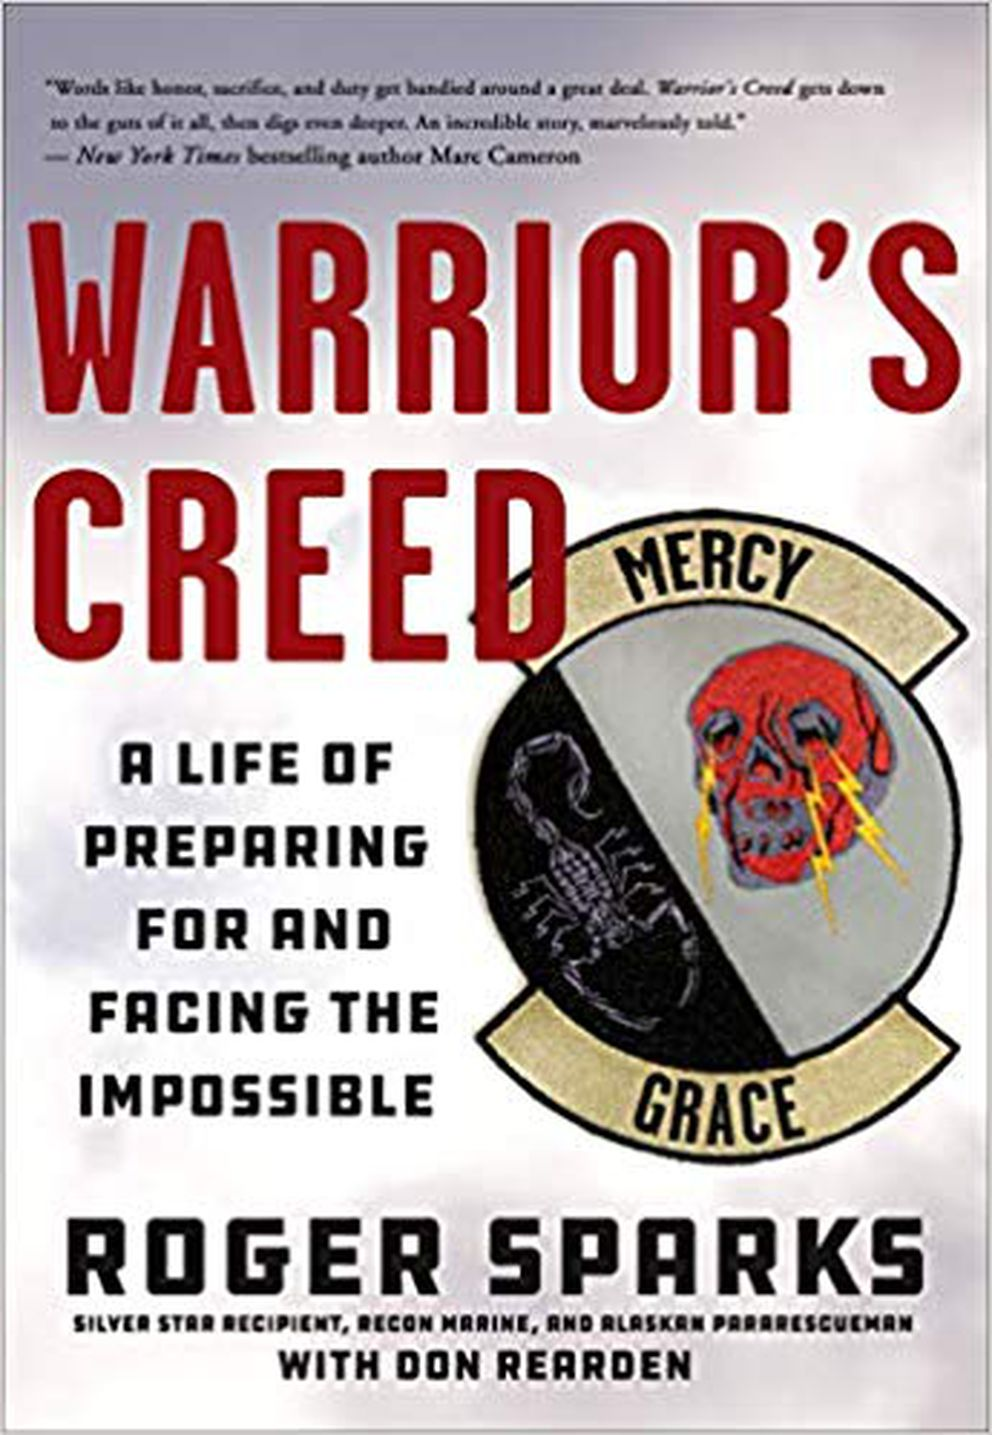 'The Warrior's Creed: A Life of Preparing For and Facing, ' by Roger Sparks with Don Rearden